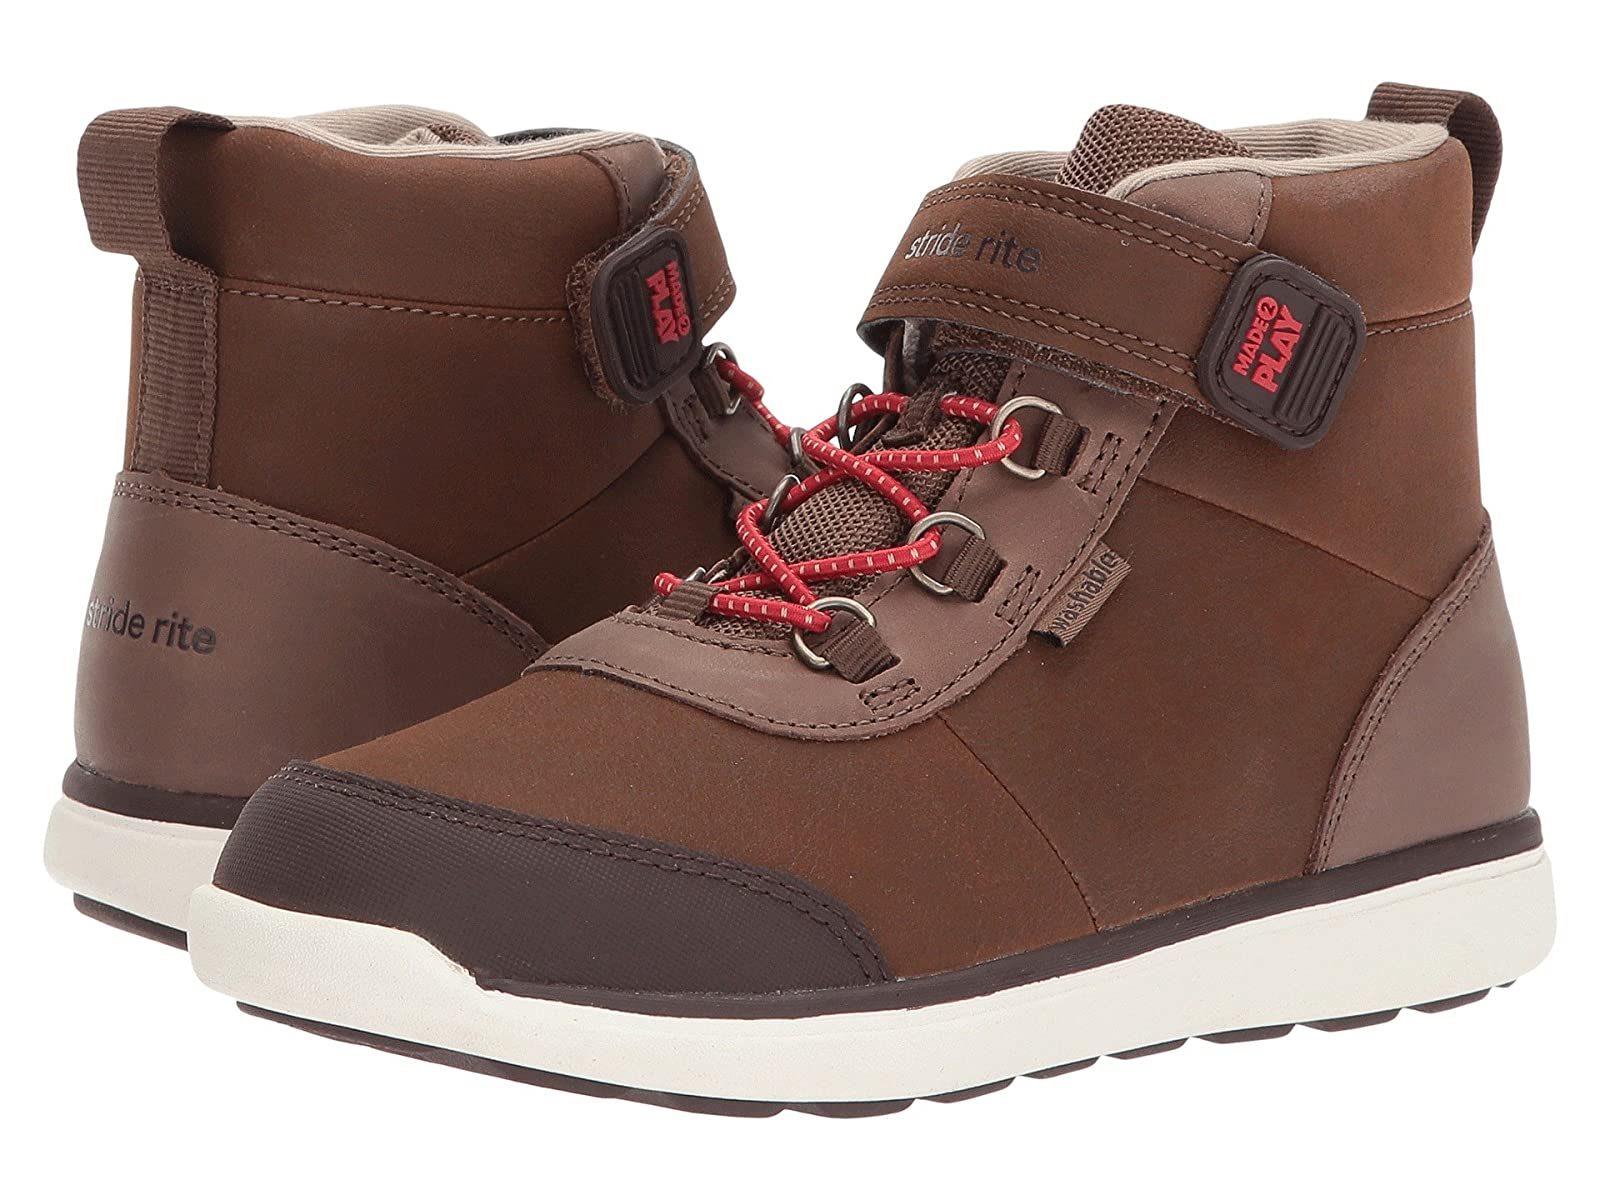 Stride Rite Made 2 Play Duncan (Little Kid)Cheap and distinctive eye-catching shoes